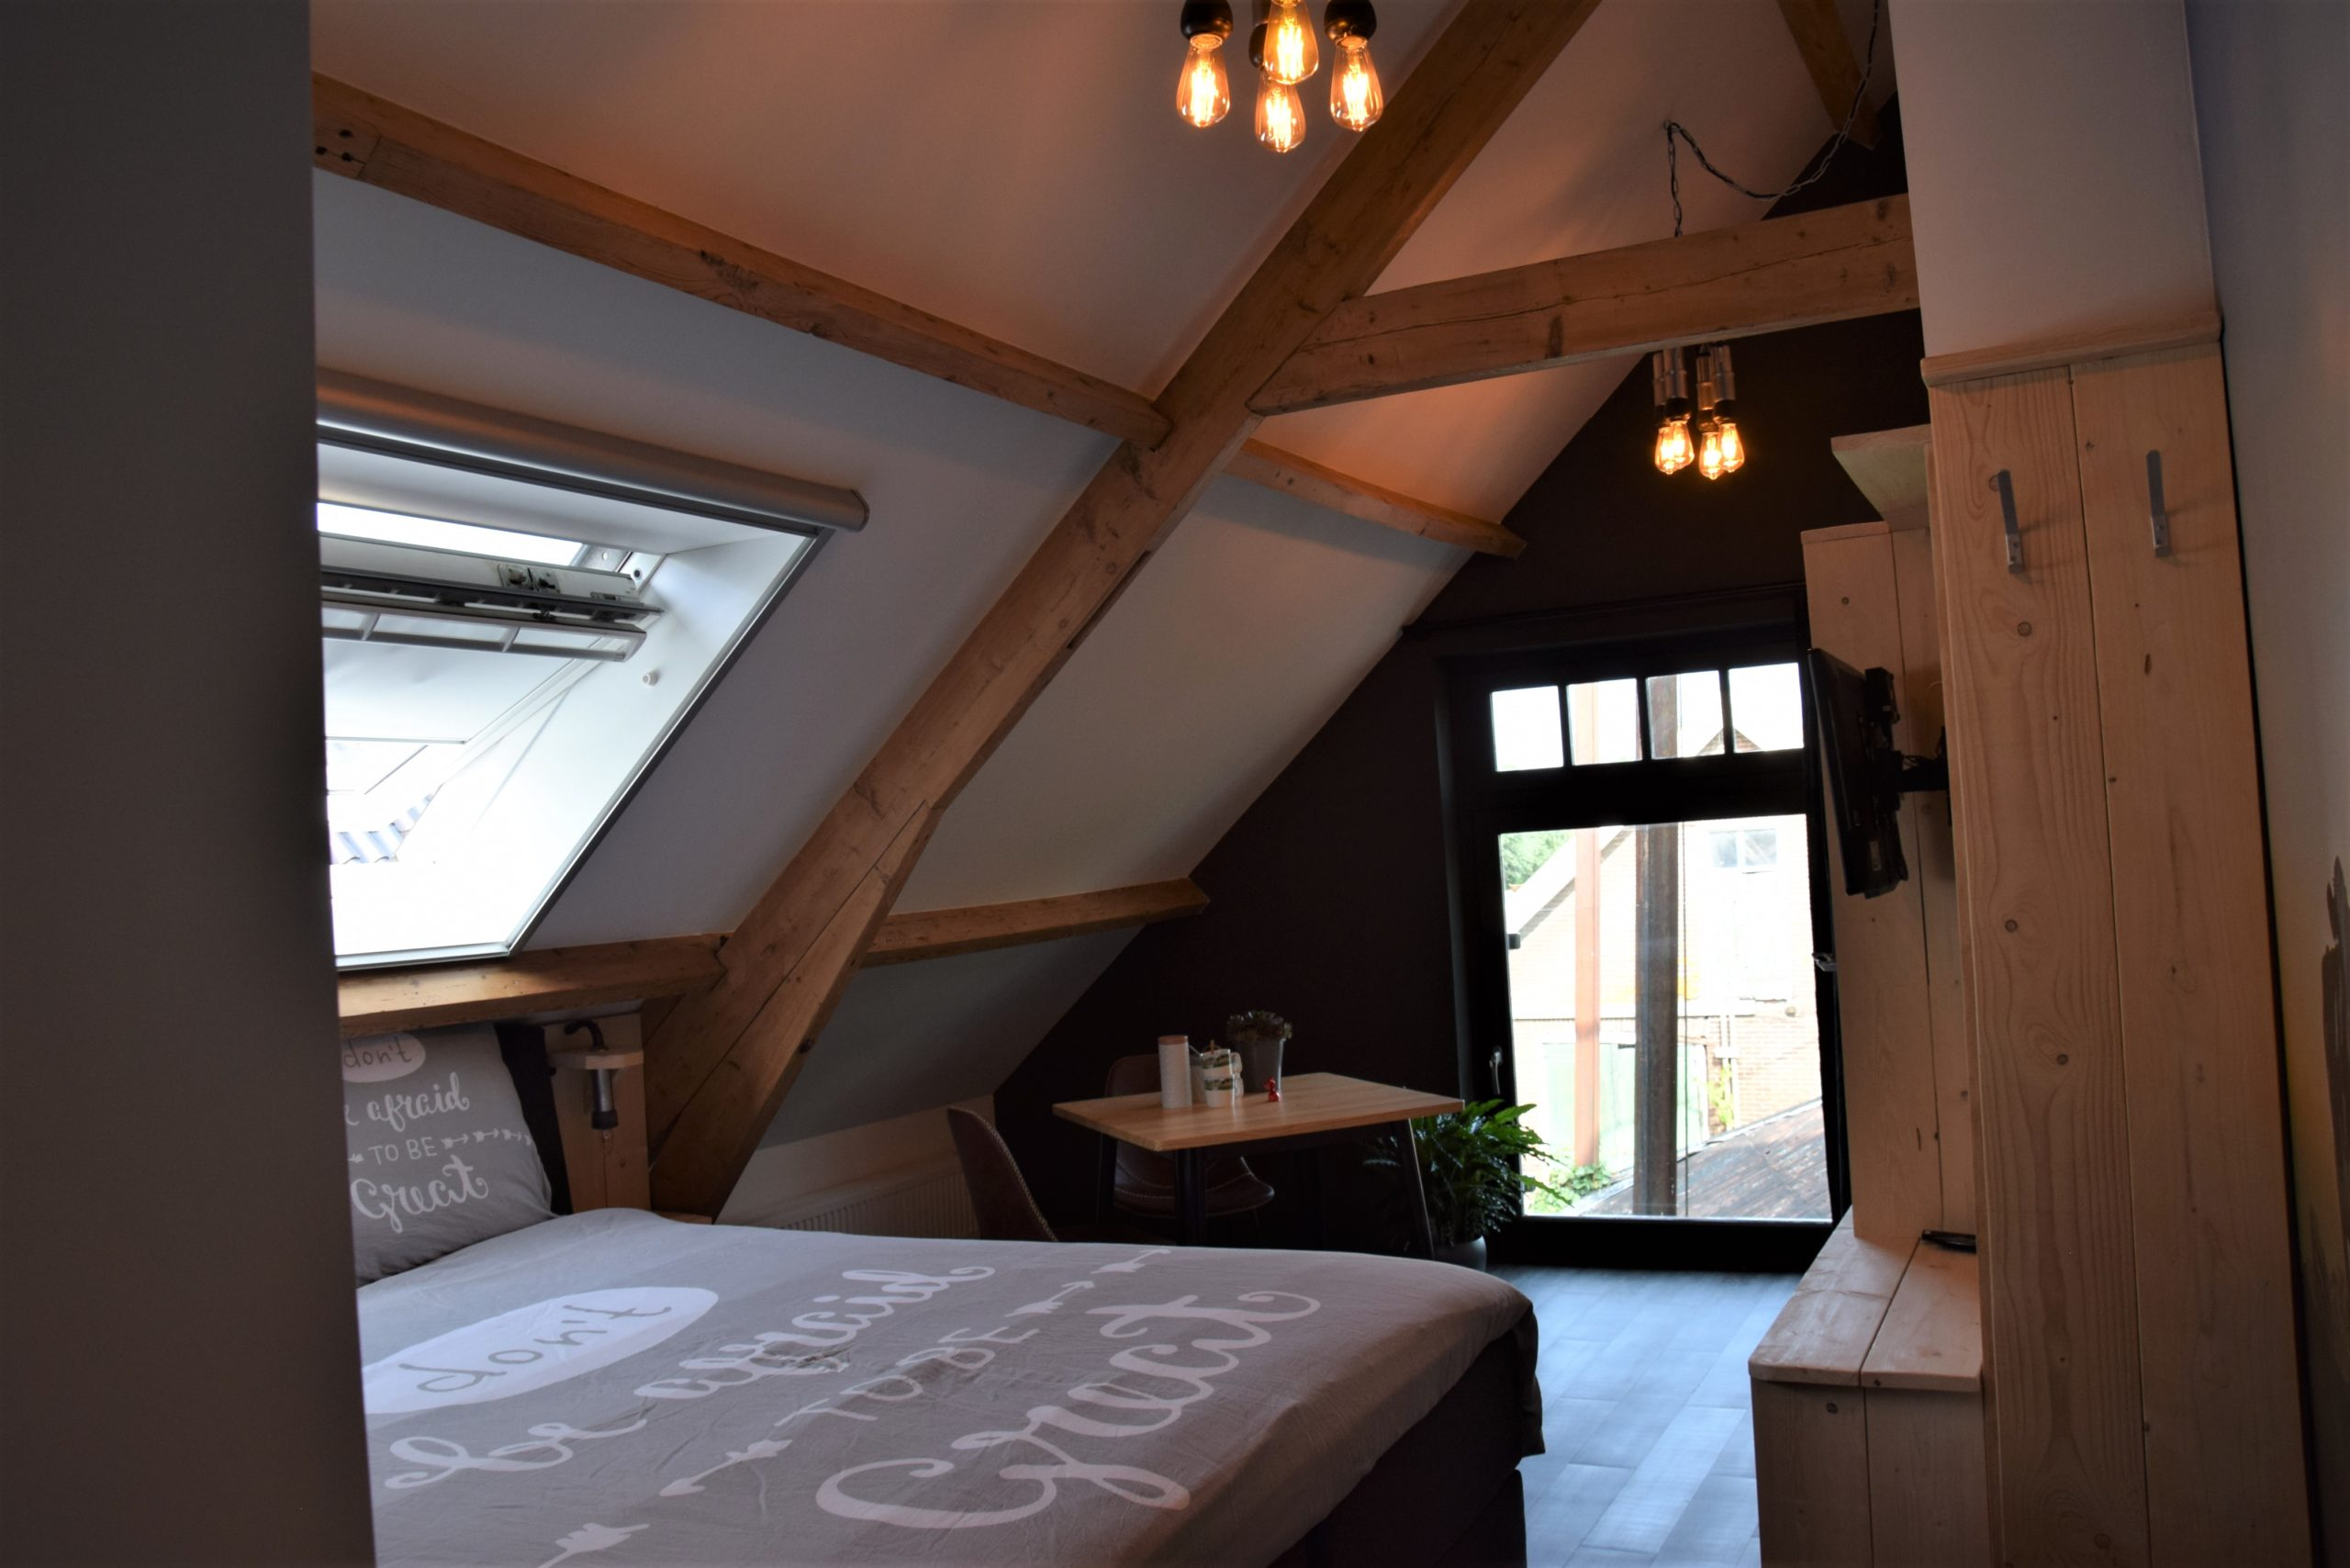 Bed and Breakfast Rotterdam